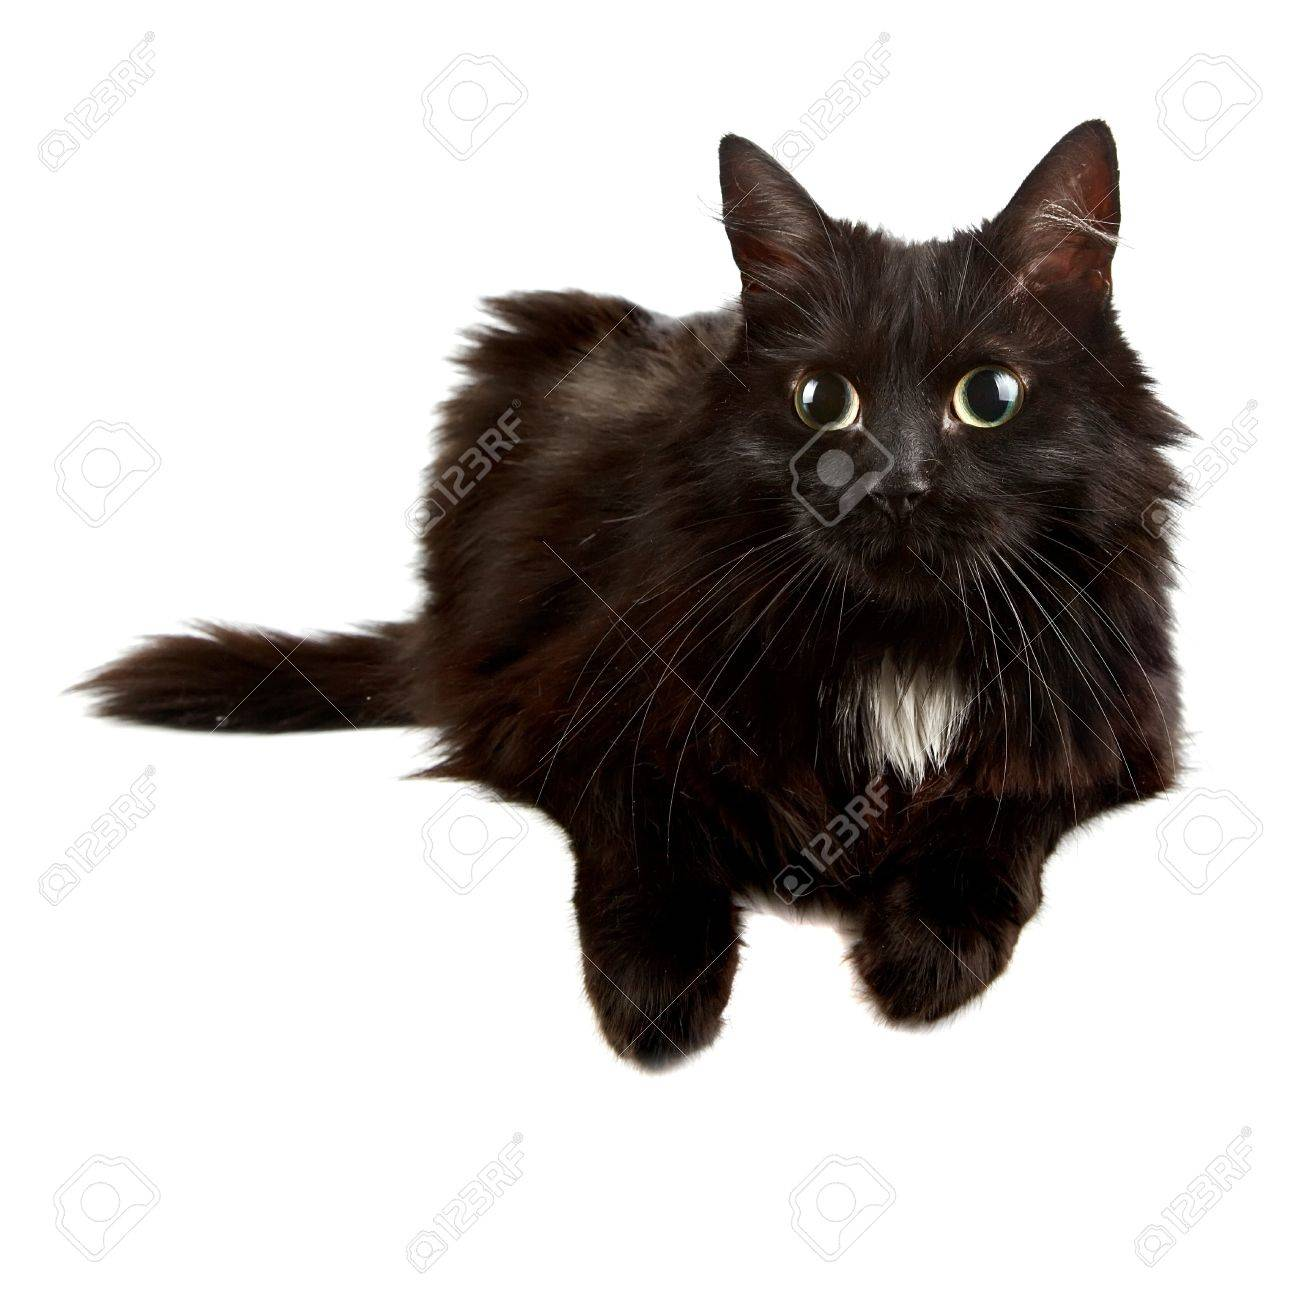 Black cat on a white background Stock Photo - 16712014